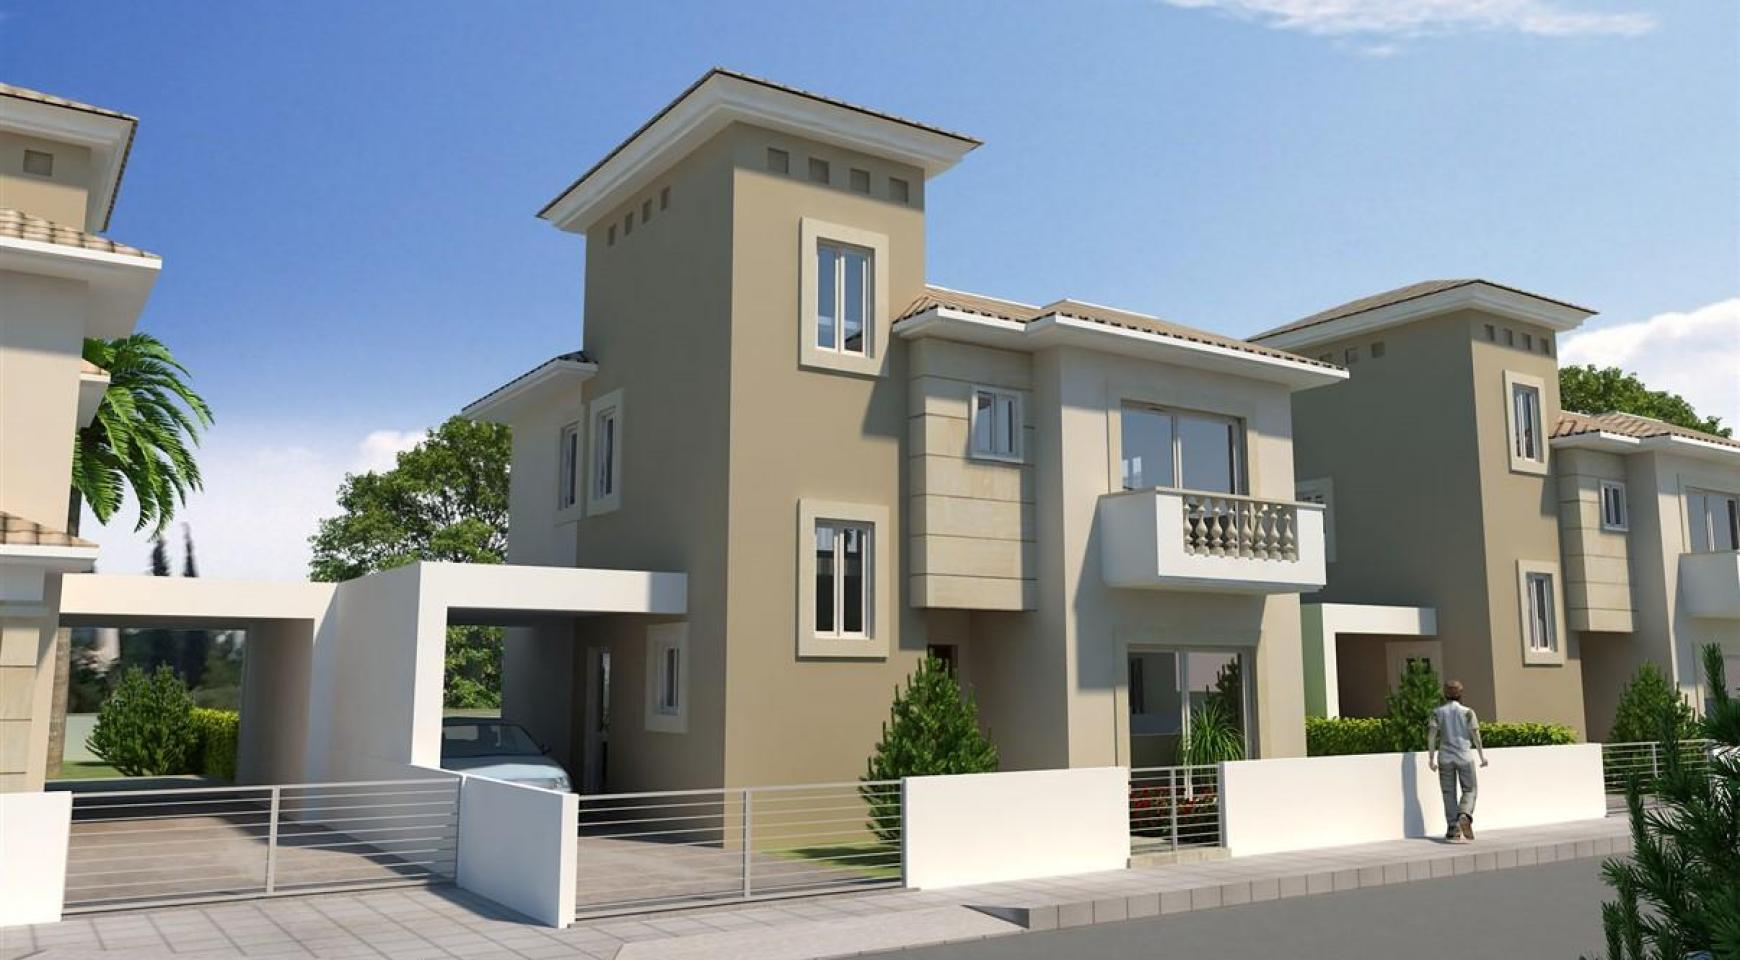 3 Bedroom Villa in a New Project - 14